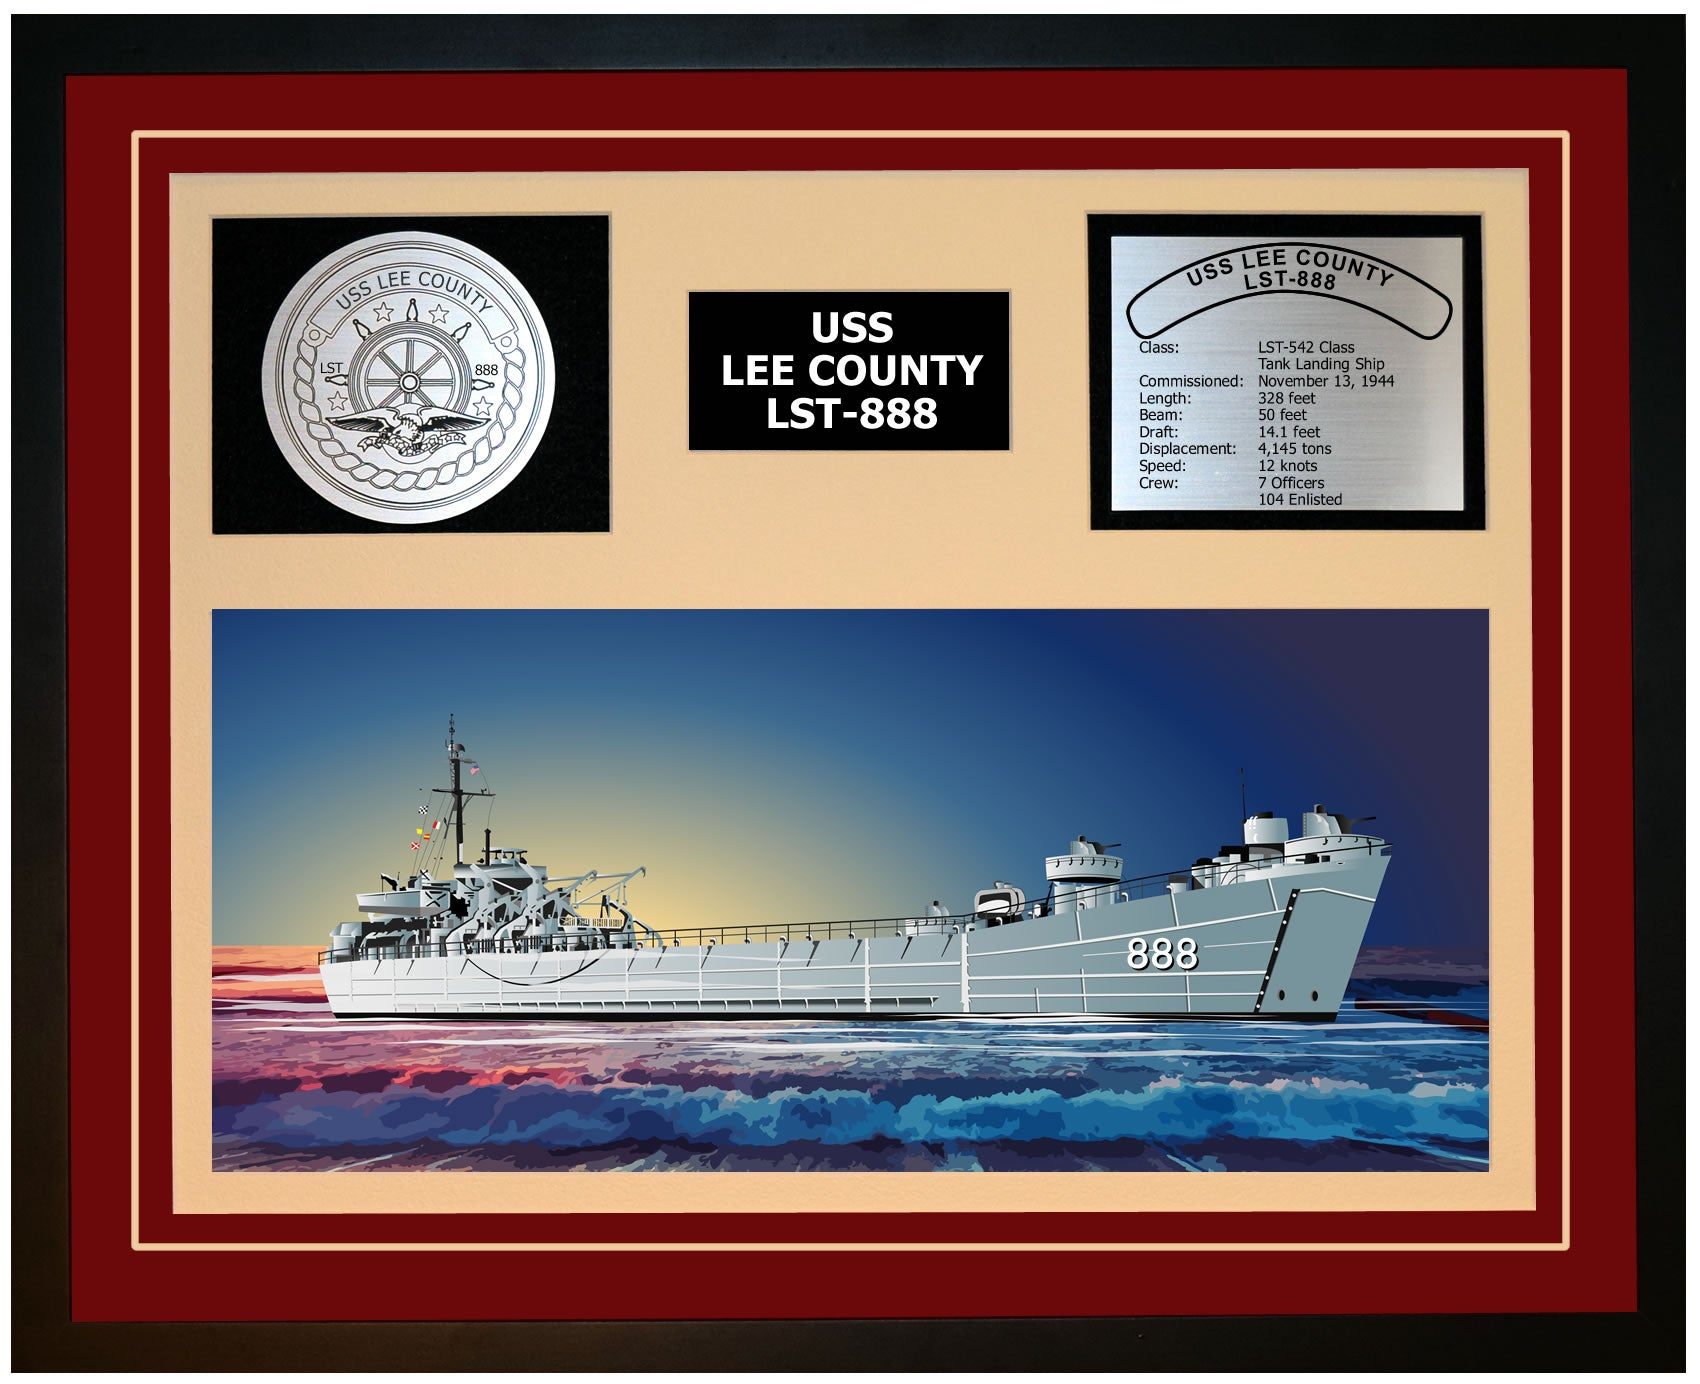 USS LEE COUNTY LST-888 Framed Navy Ship Display Burgundy